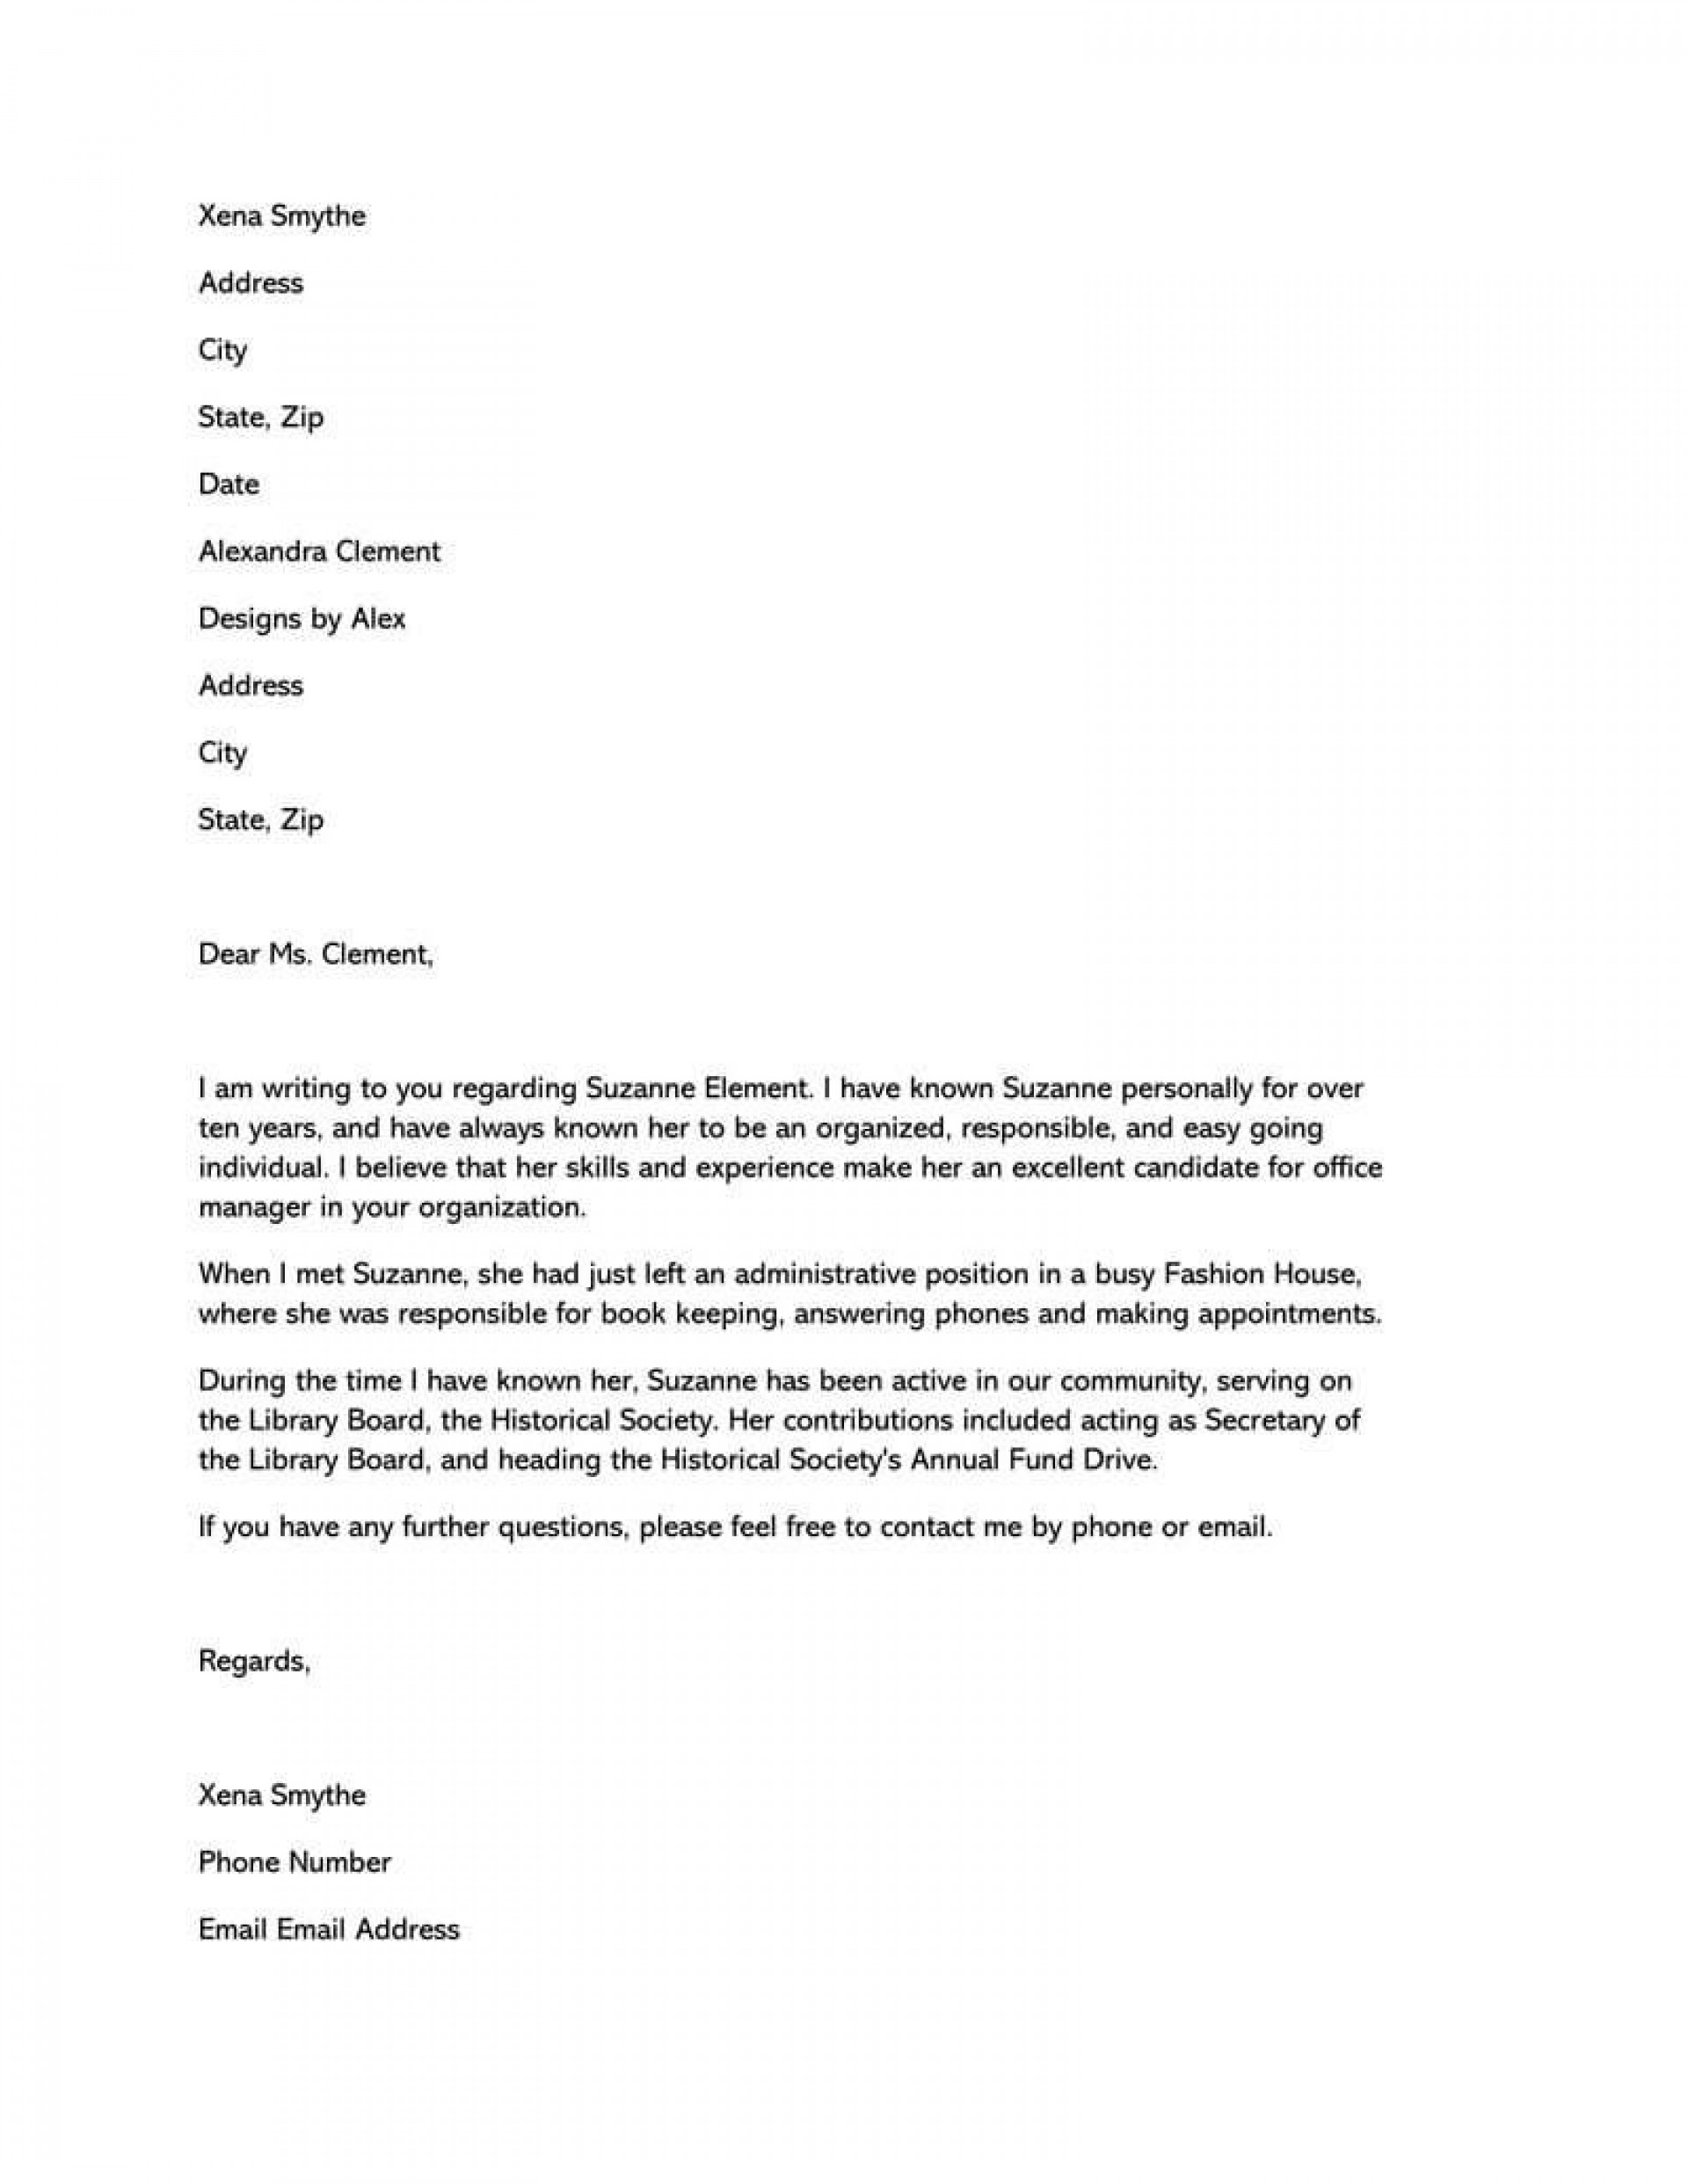 005 Unusual Personal Letter Of Recommendation Template Picture  Templates Character Reference Word1920